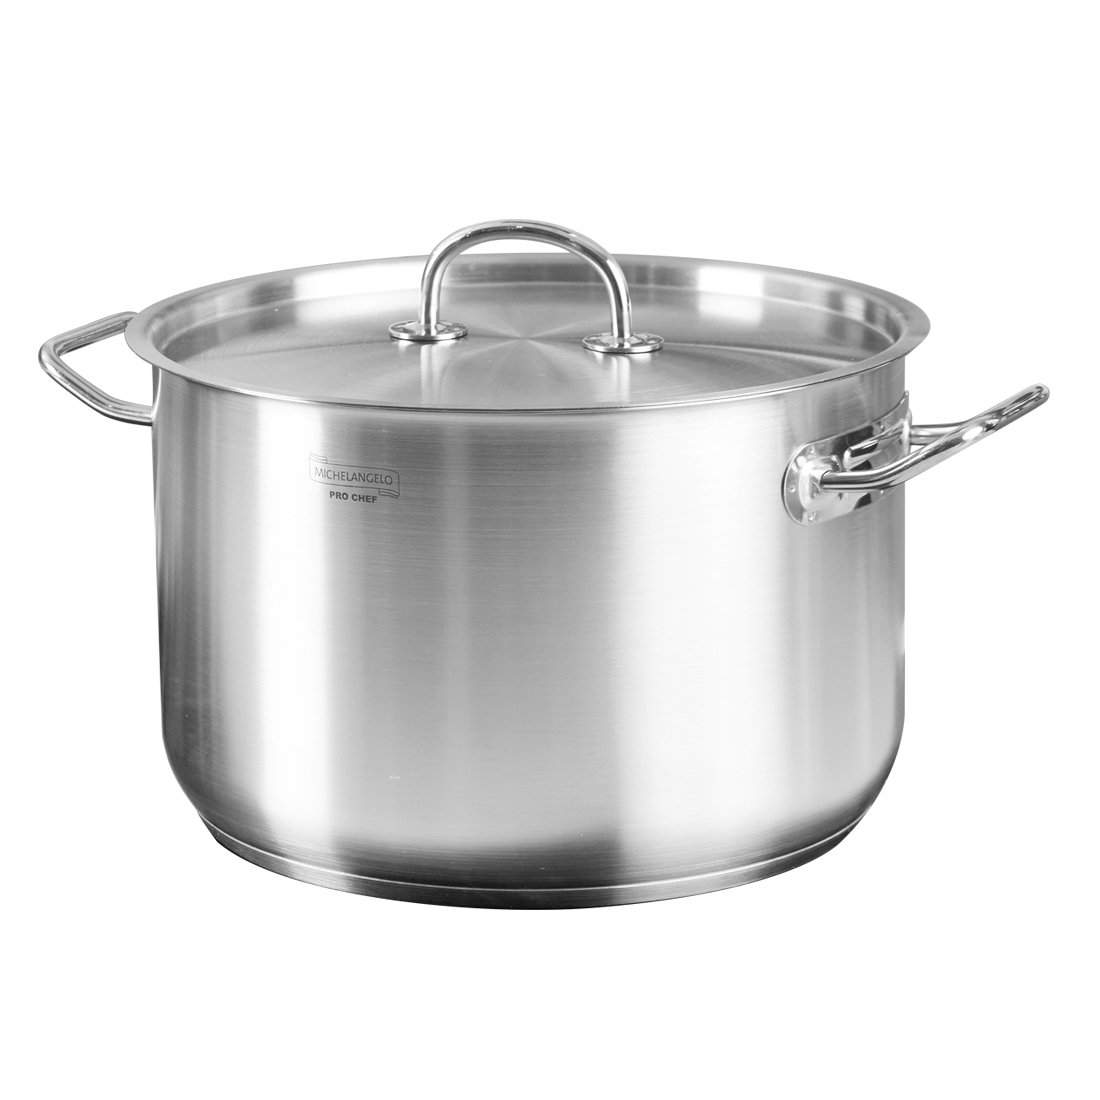 MICHELANGELO 8 Quart Stainless Steel Stock Pot With Lid, Classic 8 Qt Pot With Lid, Induction Cookware Large Pot 8Qt, 8Qt Soup Pot, 8 Qt Stock Pot Induction